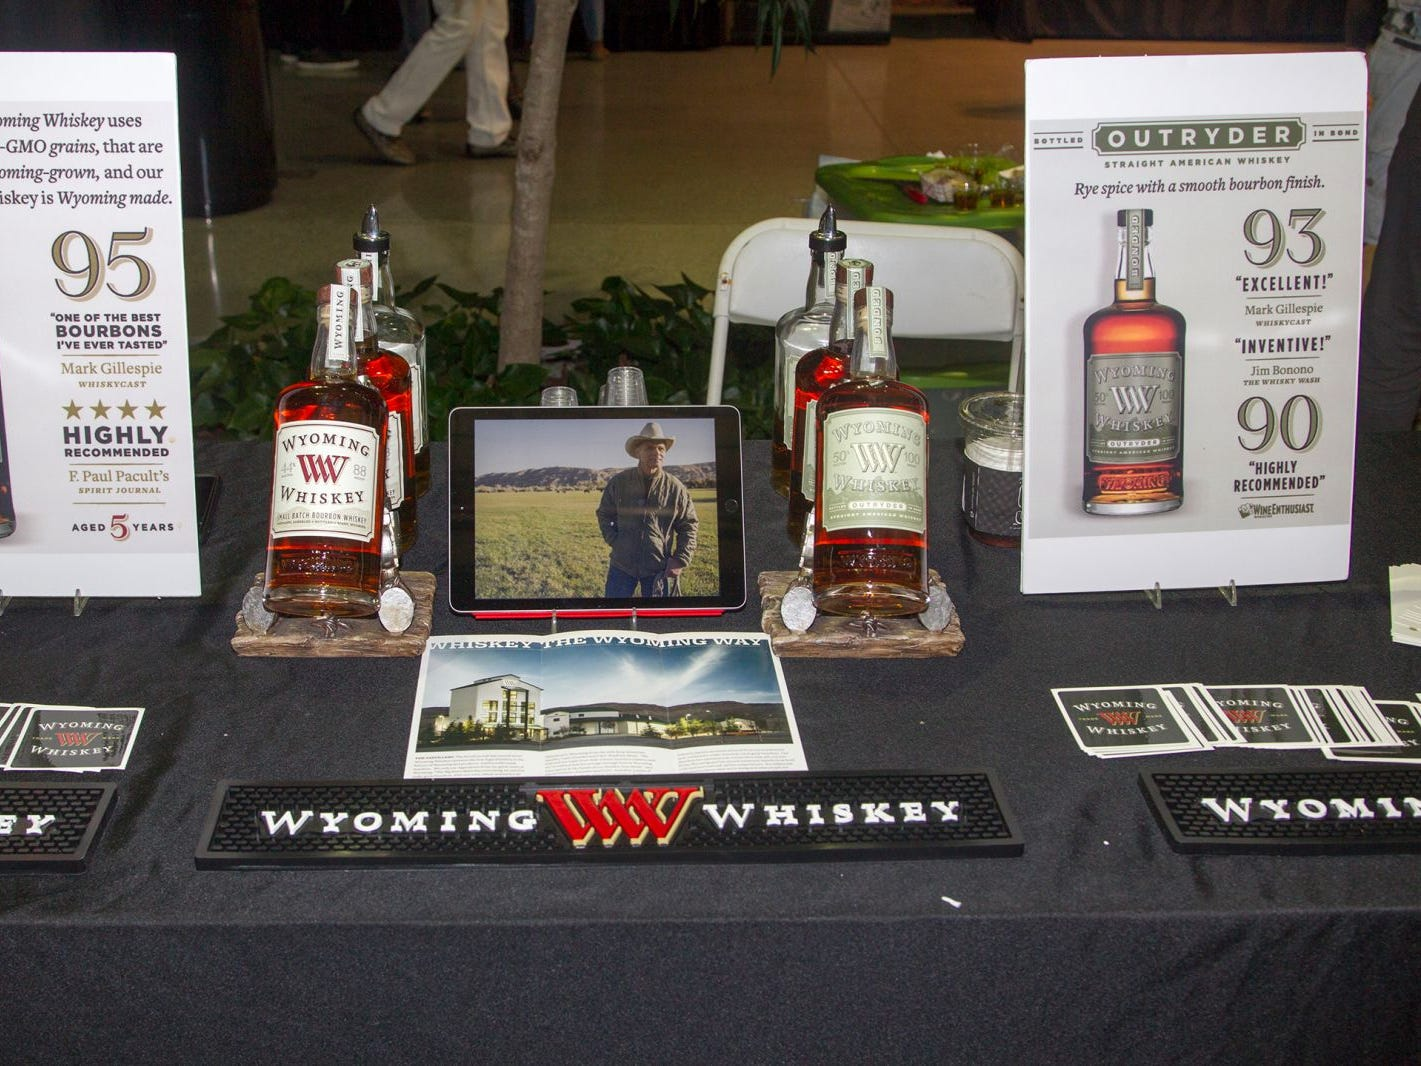 Jersey City Craft Distillery Fest at the Harborside Atrium featured more than 100 styles of spirits. Guests had the chance to taste craft-distilled spirits from moonshine, rum, cognac, whiskey, vodka, gin, tequila and more. 09/08/2018